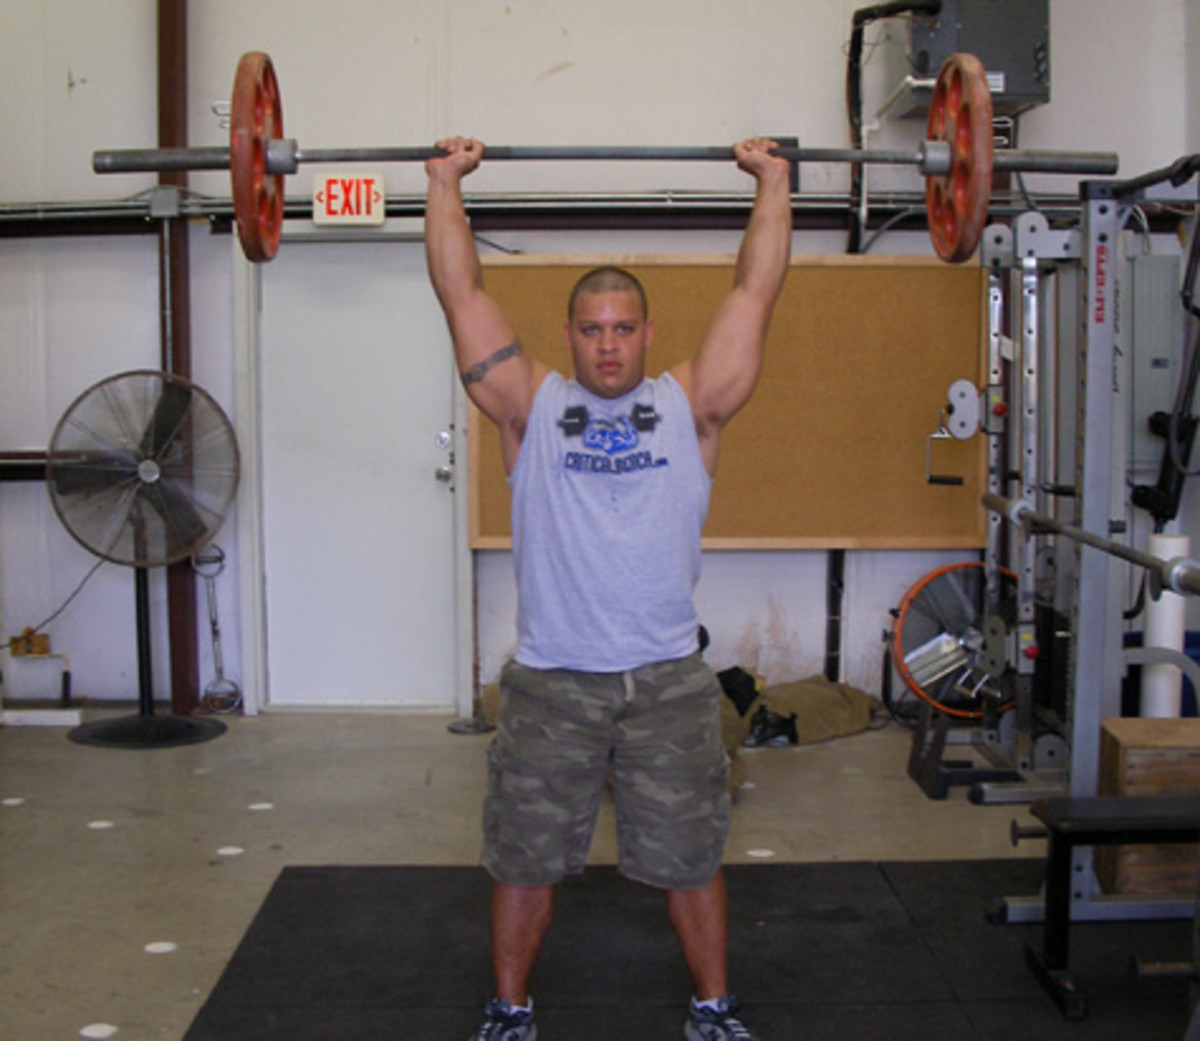 With the sheer amount of weight able to be handled, the overhead press yields the best results for shoulder development.